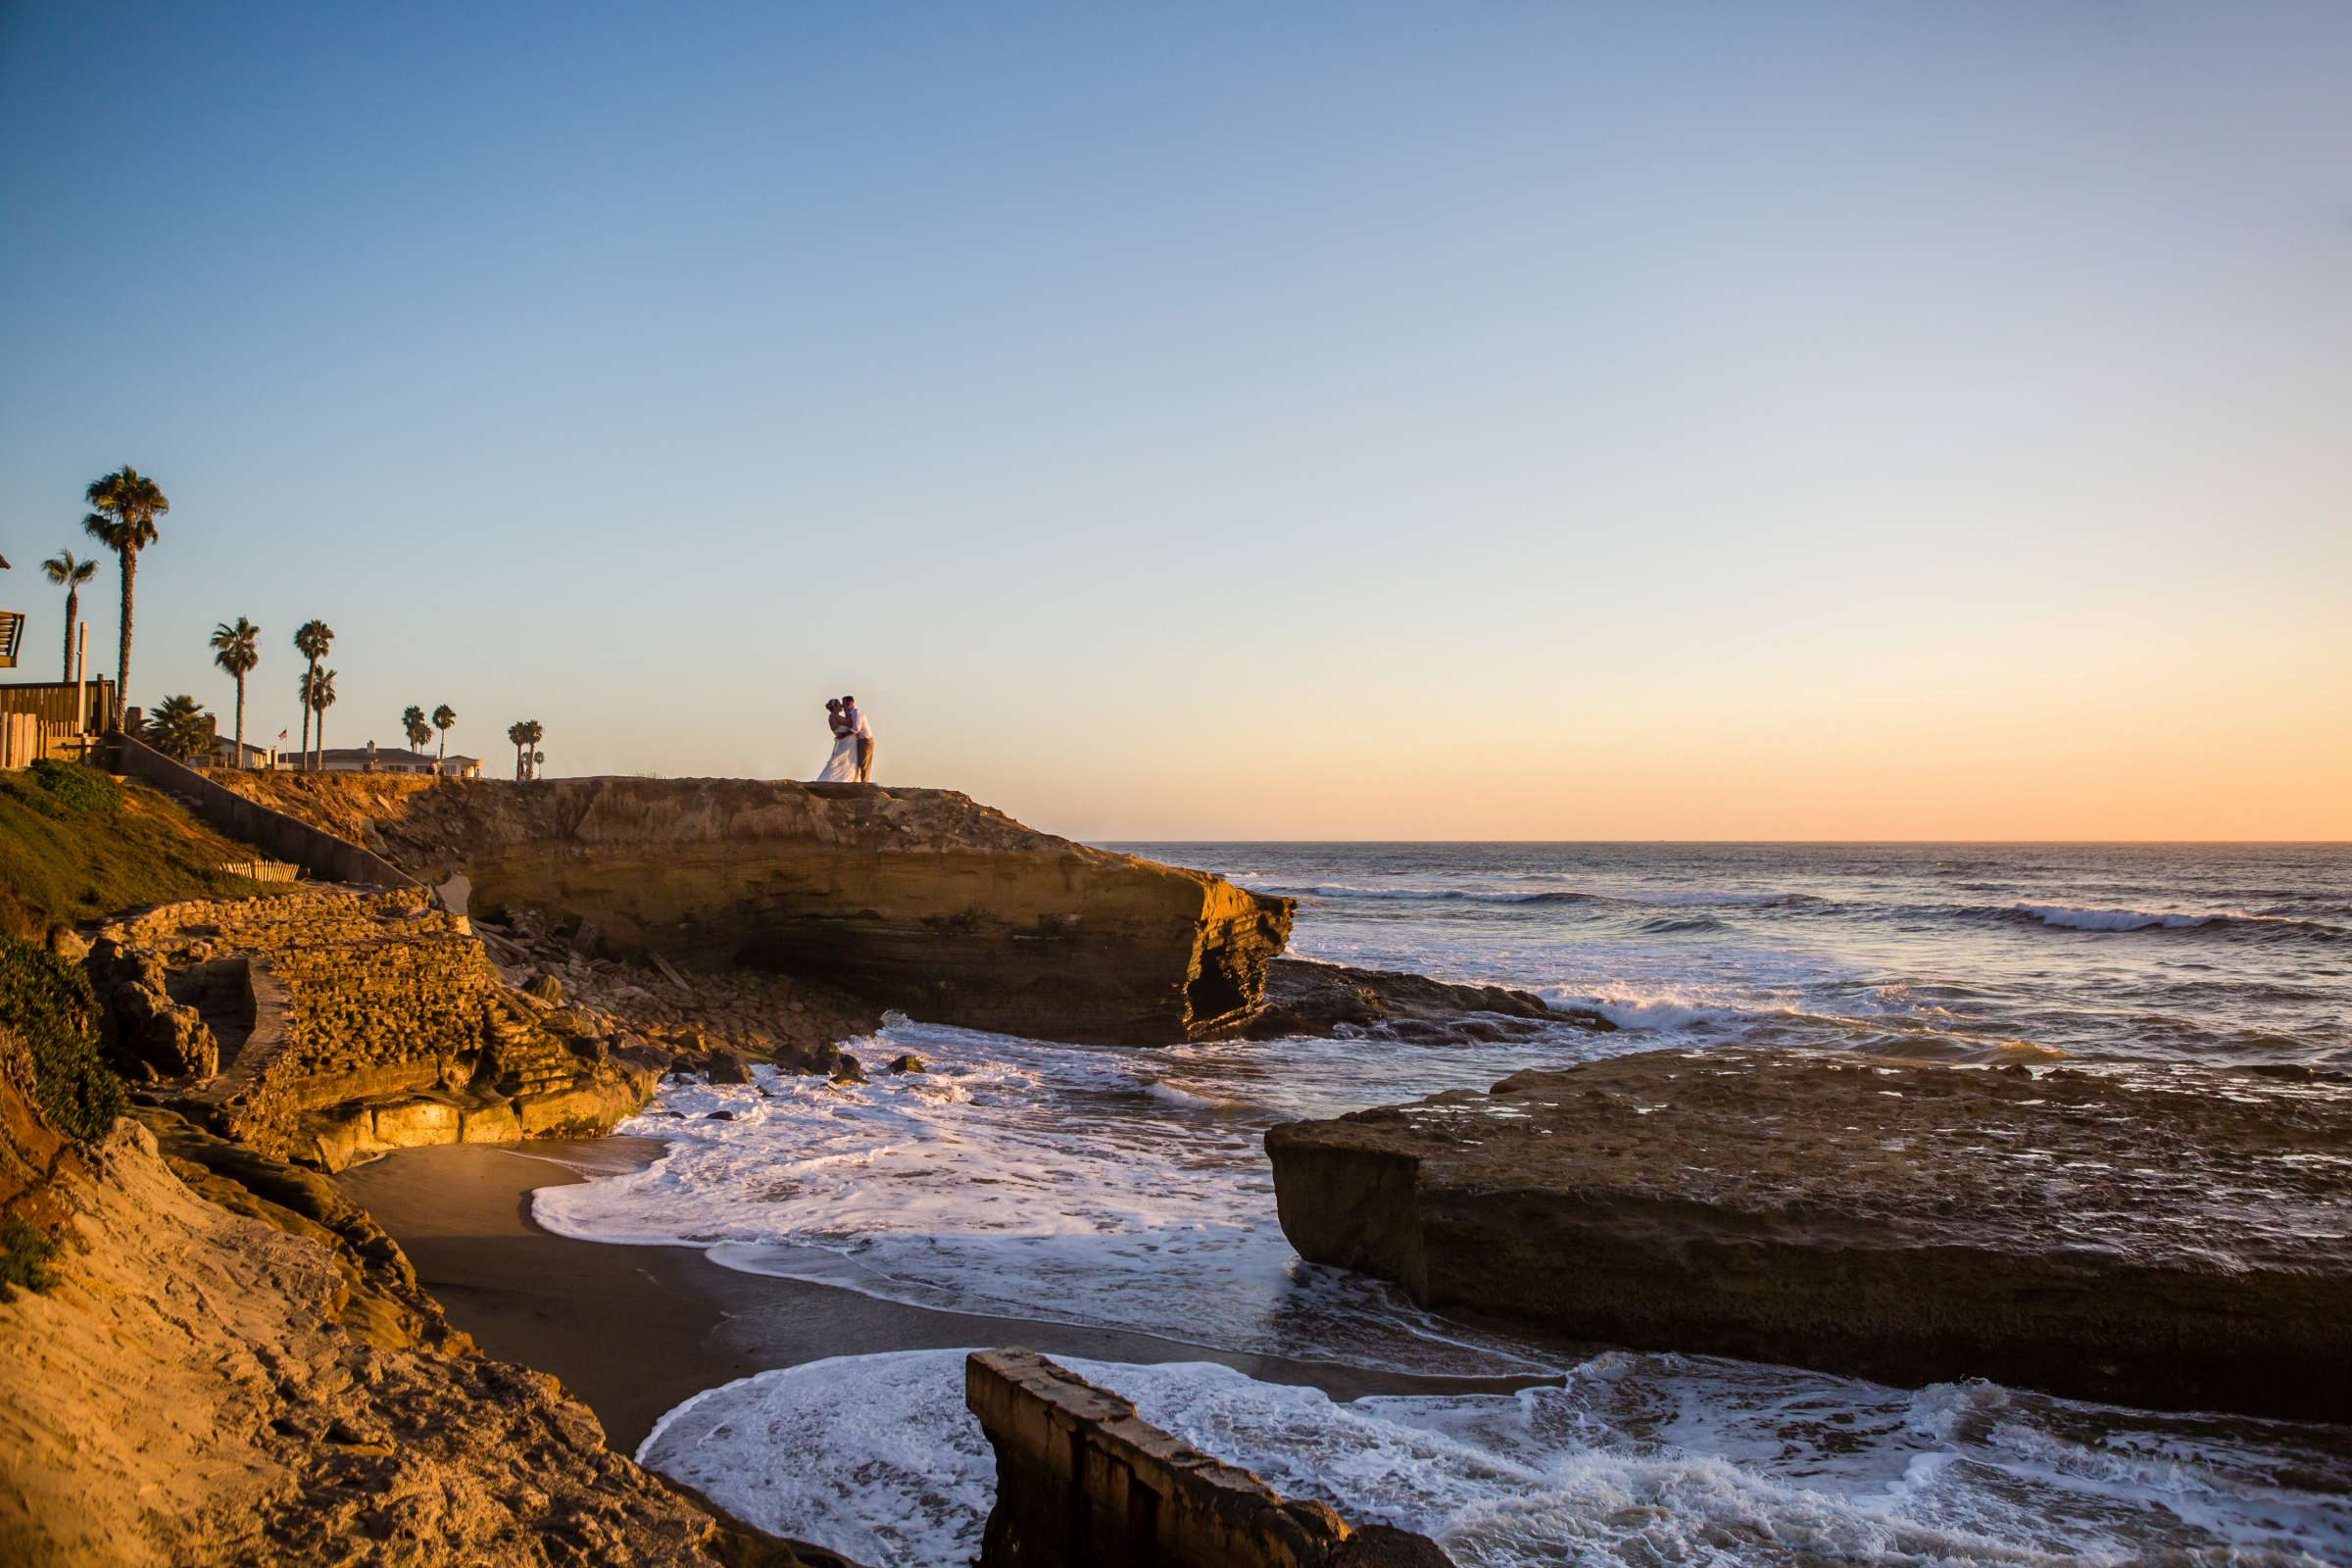 Landscapes at The Inn at Sunset Cliffs Wedding, Melinda and Benjamin Wedding Photo #1 by True Photography